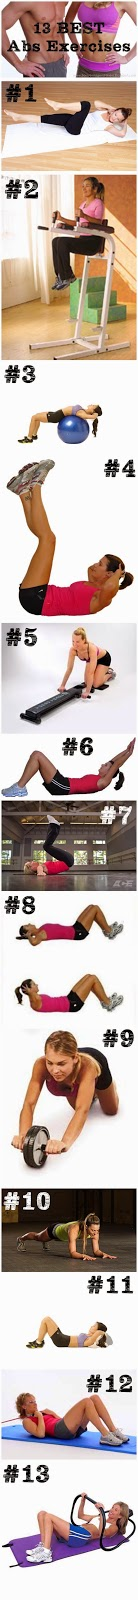 13 Best Abs Exerciises by Sassy Smidgens Fitness  If you've been working it but your abs are getting any better then this is the article for you!